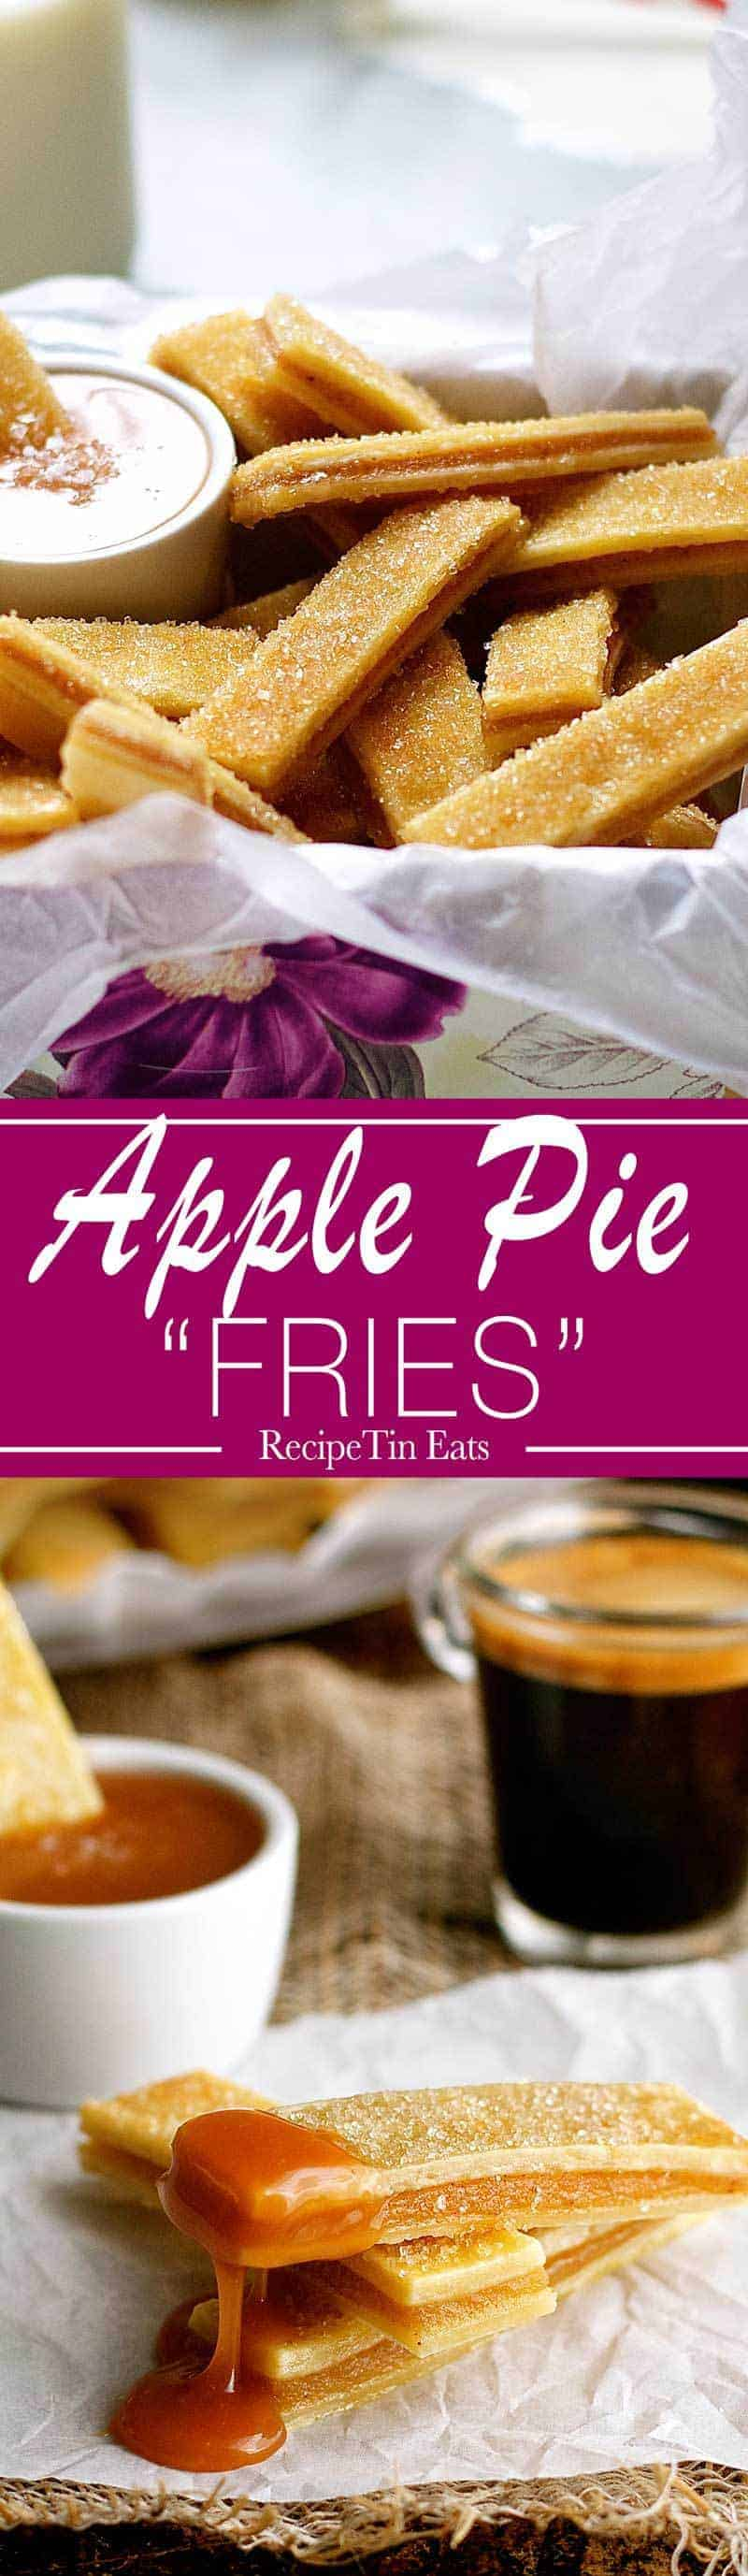 """Apple Pie """"Fries""""   Made these for a gathering, they were a HIT with kids AND the parents!!!"""